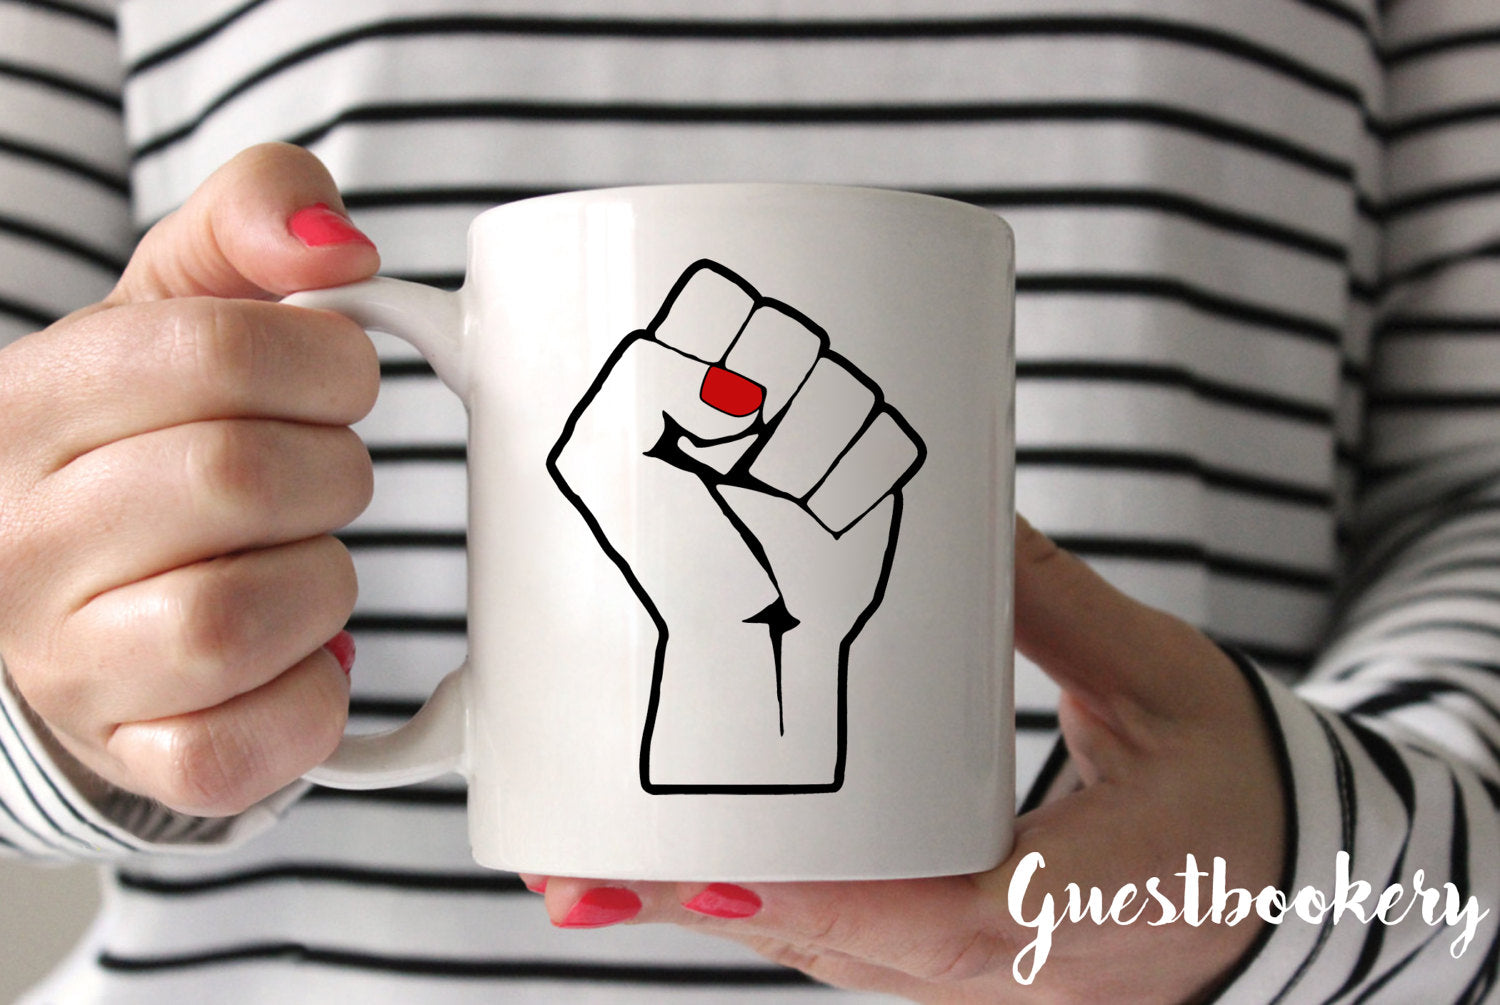 Feminist Fist Mug - Guestbookery